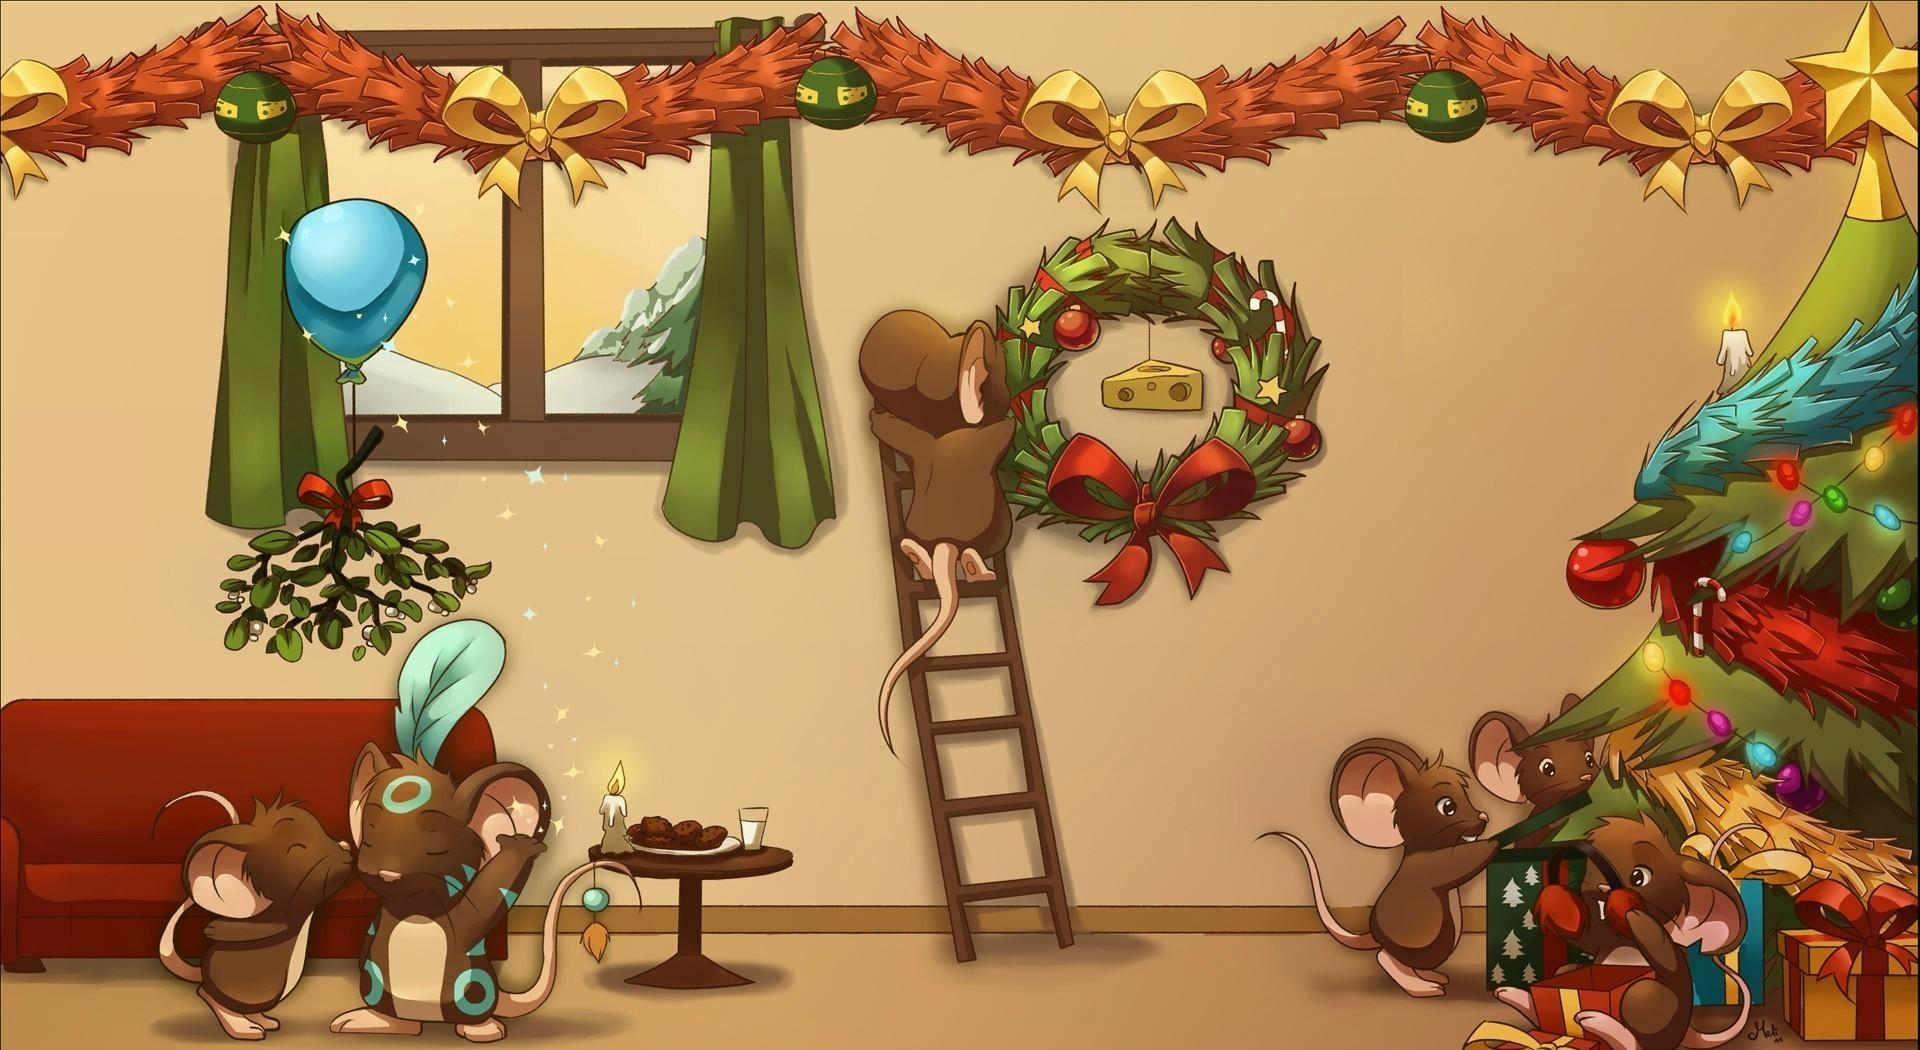 127925 download wallpaper Holidays, New Year, Christmas, Holiday, Vanity, Decorations, Christmas Tree, Cartoon, Mice screensavers and pictures for free